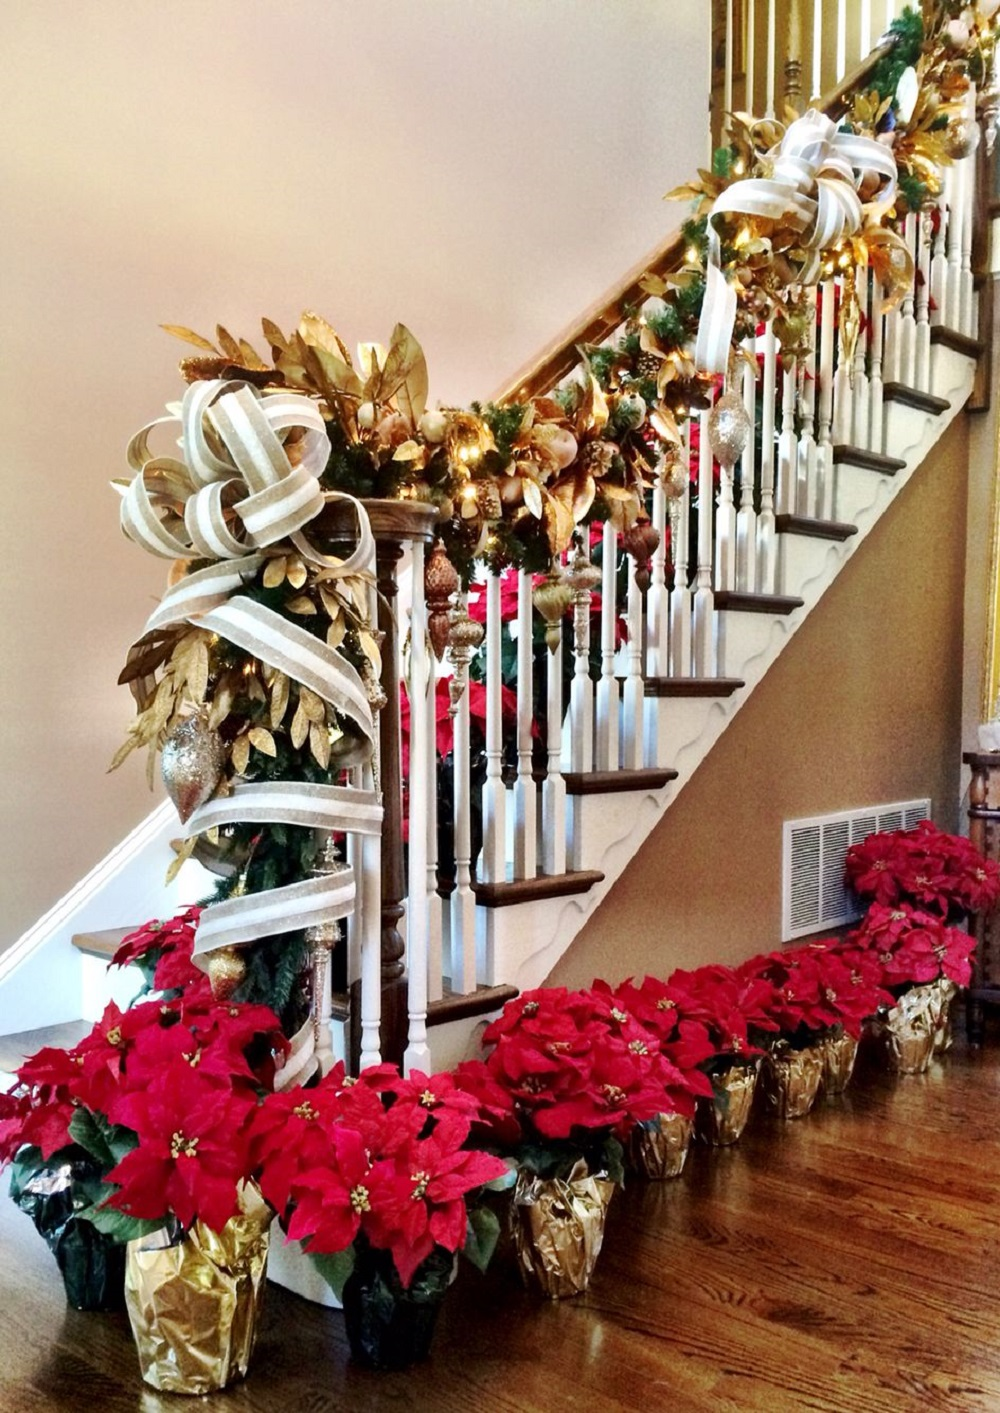 t3-4 Great decoration ideas for Christmas stairs that you should definitely try